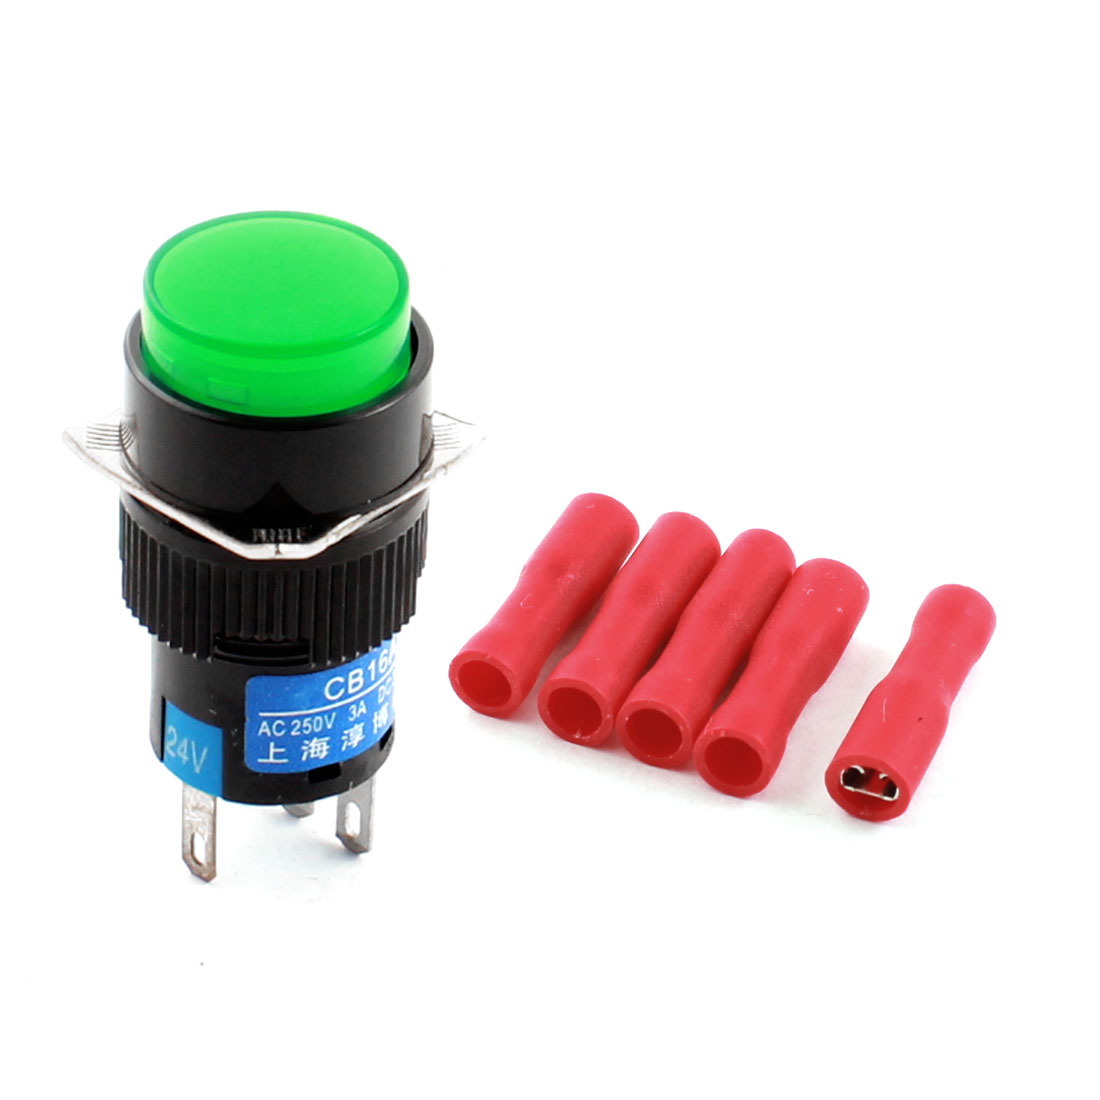 DC 24V Green Lamp SPDT Self Locking Round Push Button Switch w Female Connector